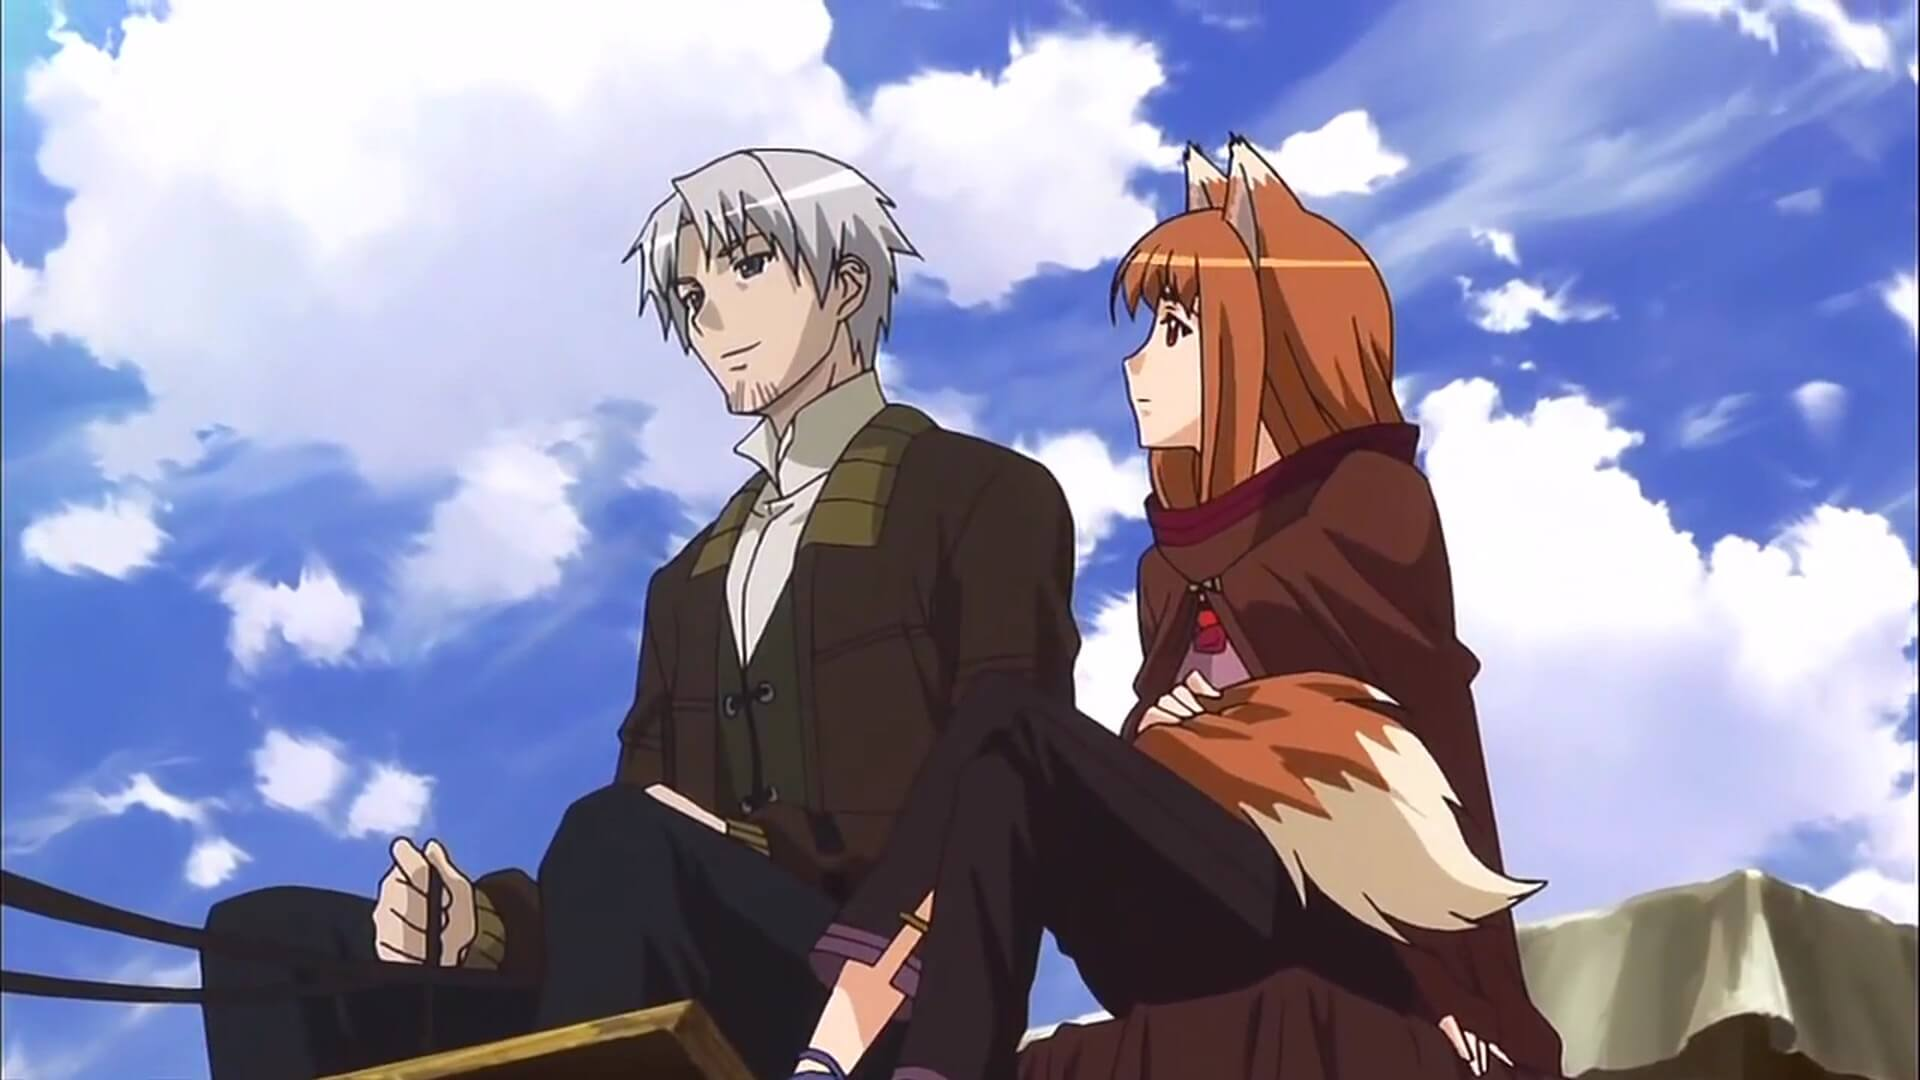 REVIEW: Spice and Wolf (2008) - Geeks + Gamers